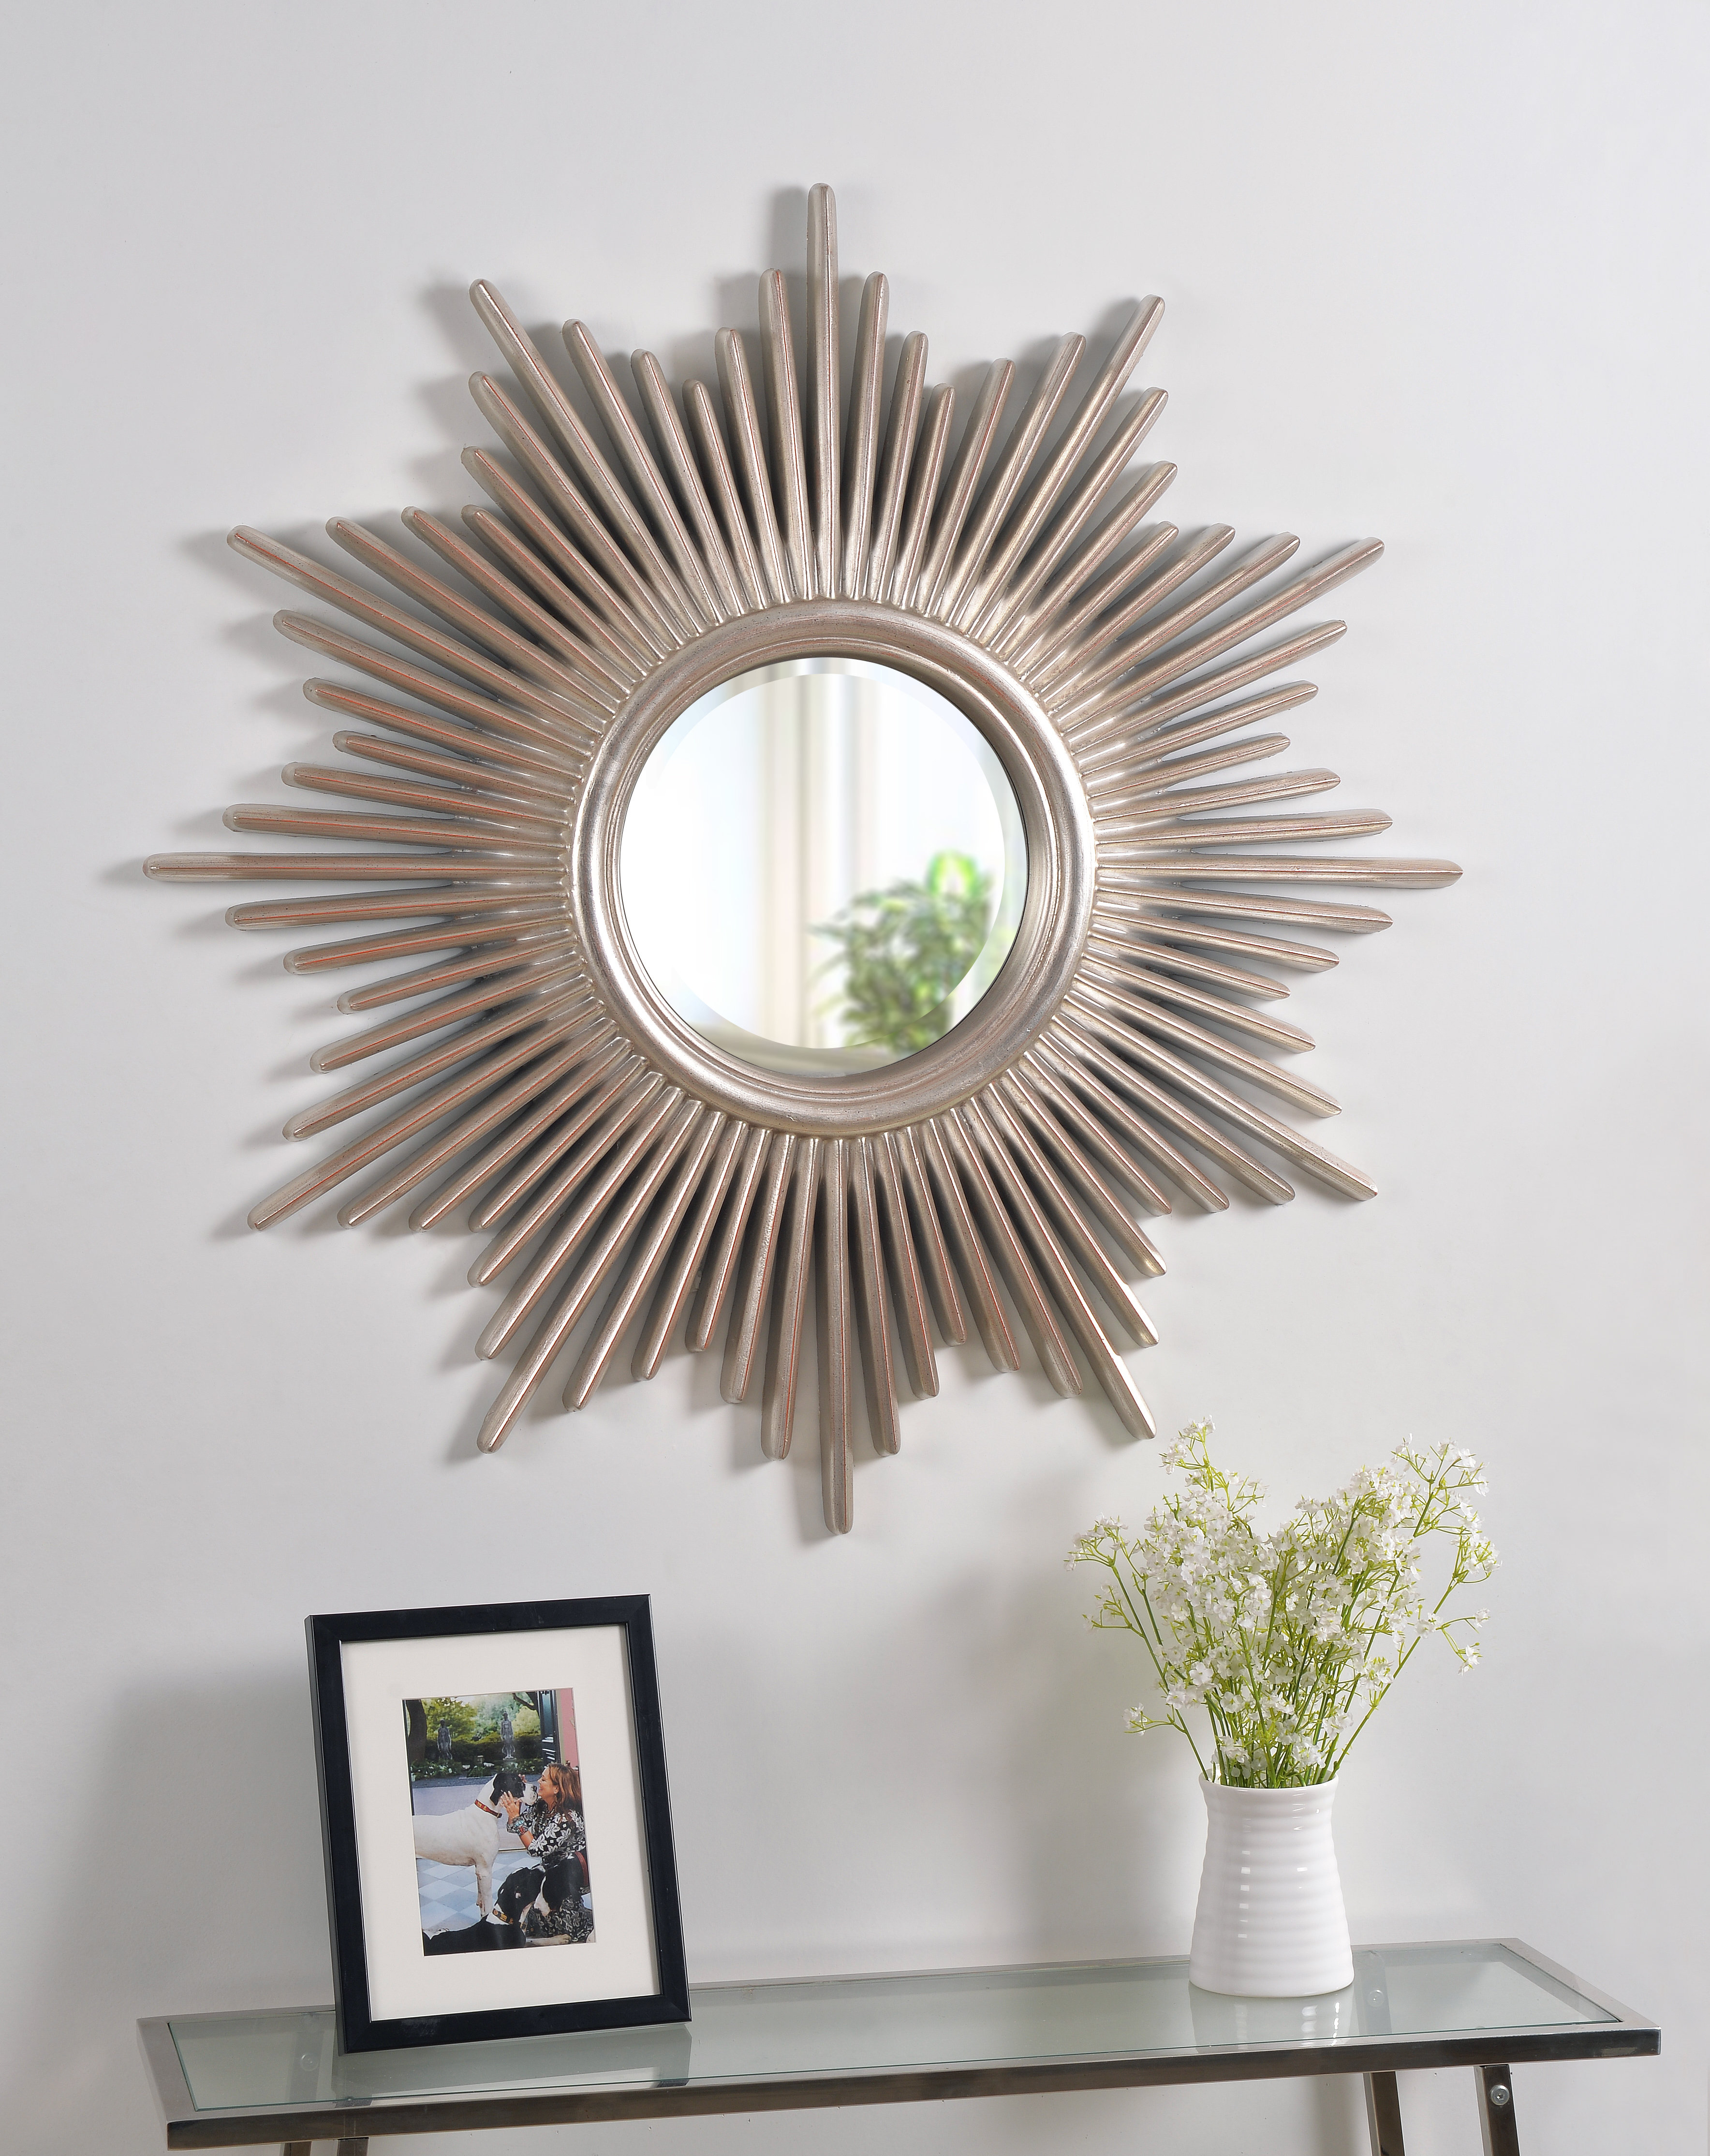 Modern Sunburst Mirrors | Allmodern With Regard To Newtown Accent Mirrors (Image 10 of 20)